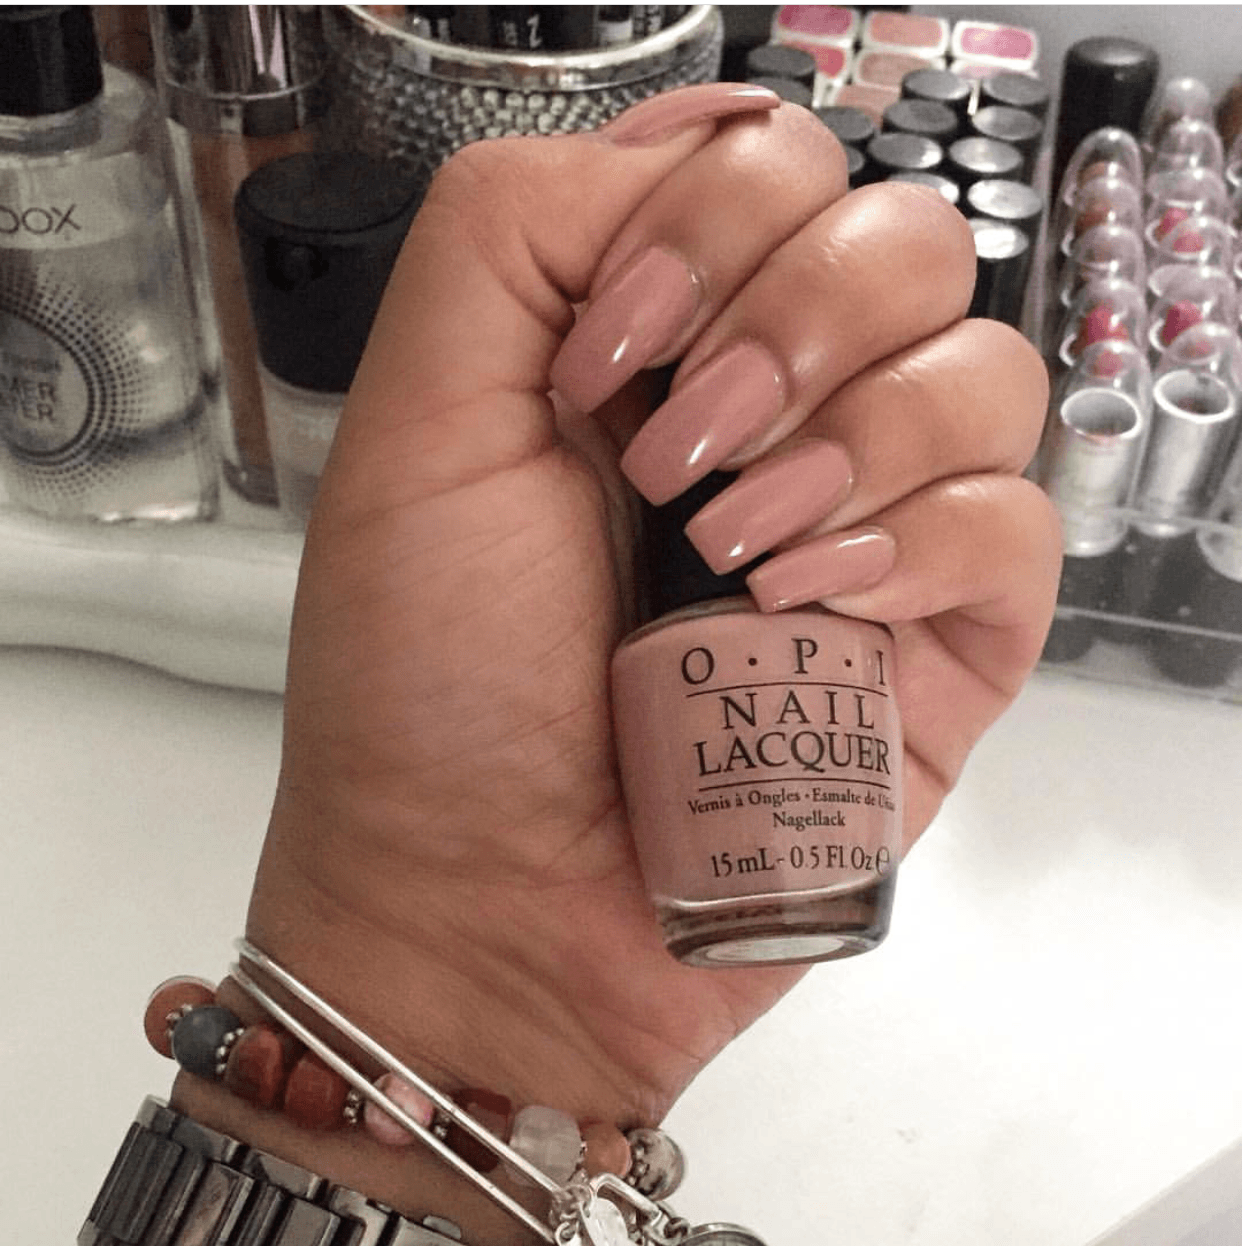 Nude blondes with painted nails